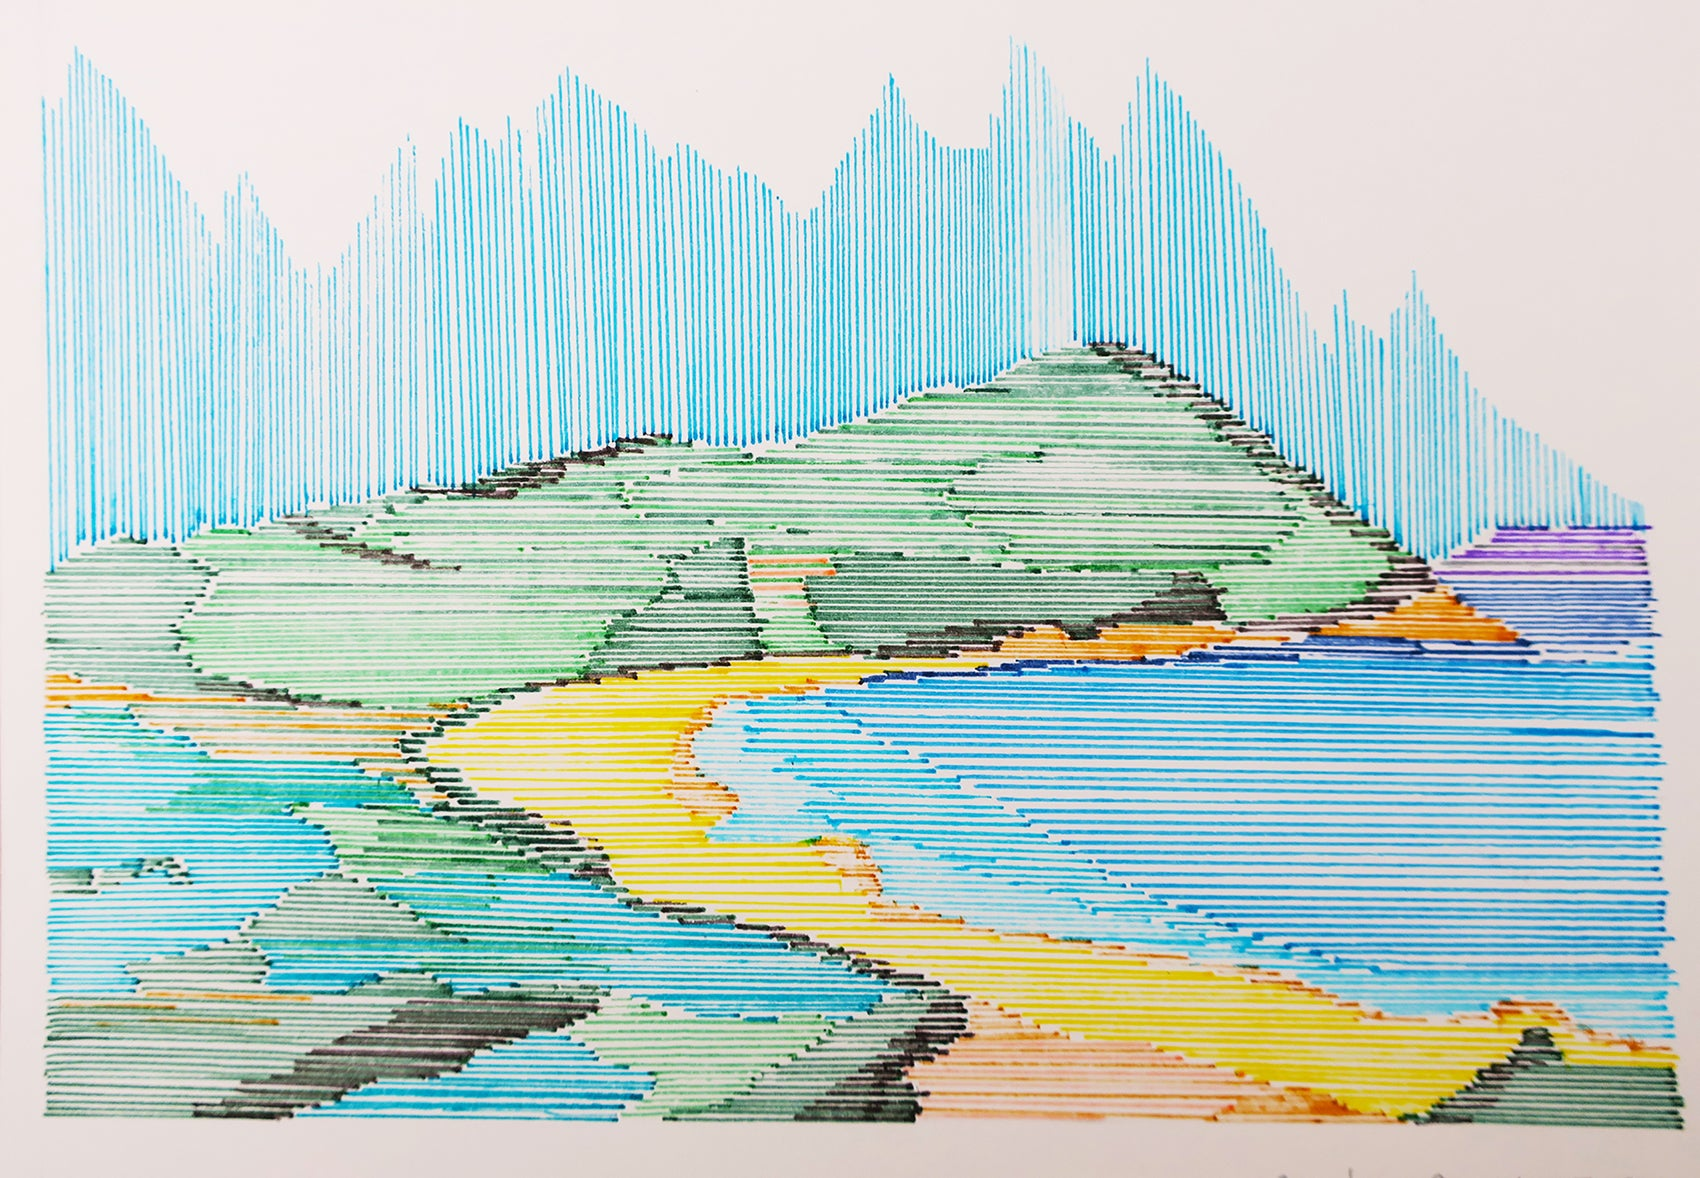 Mornington Peninsula Illustration